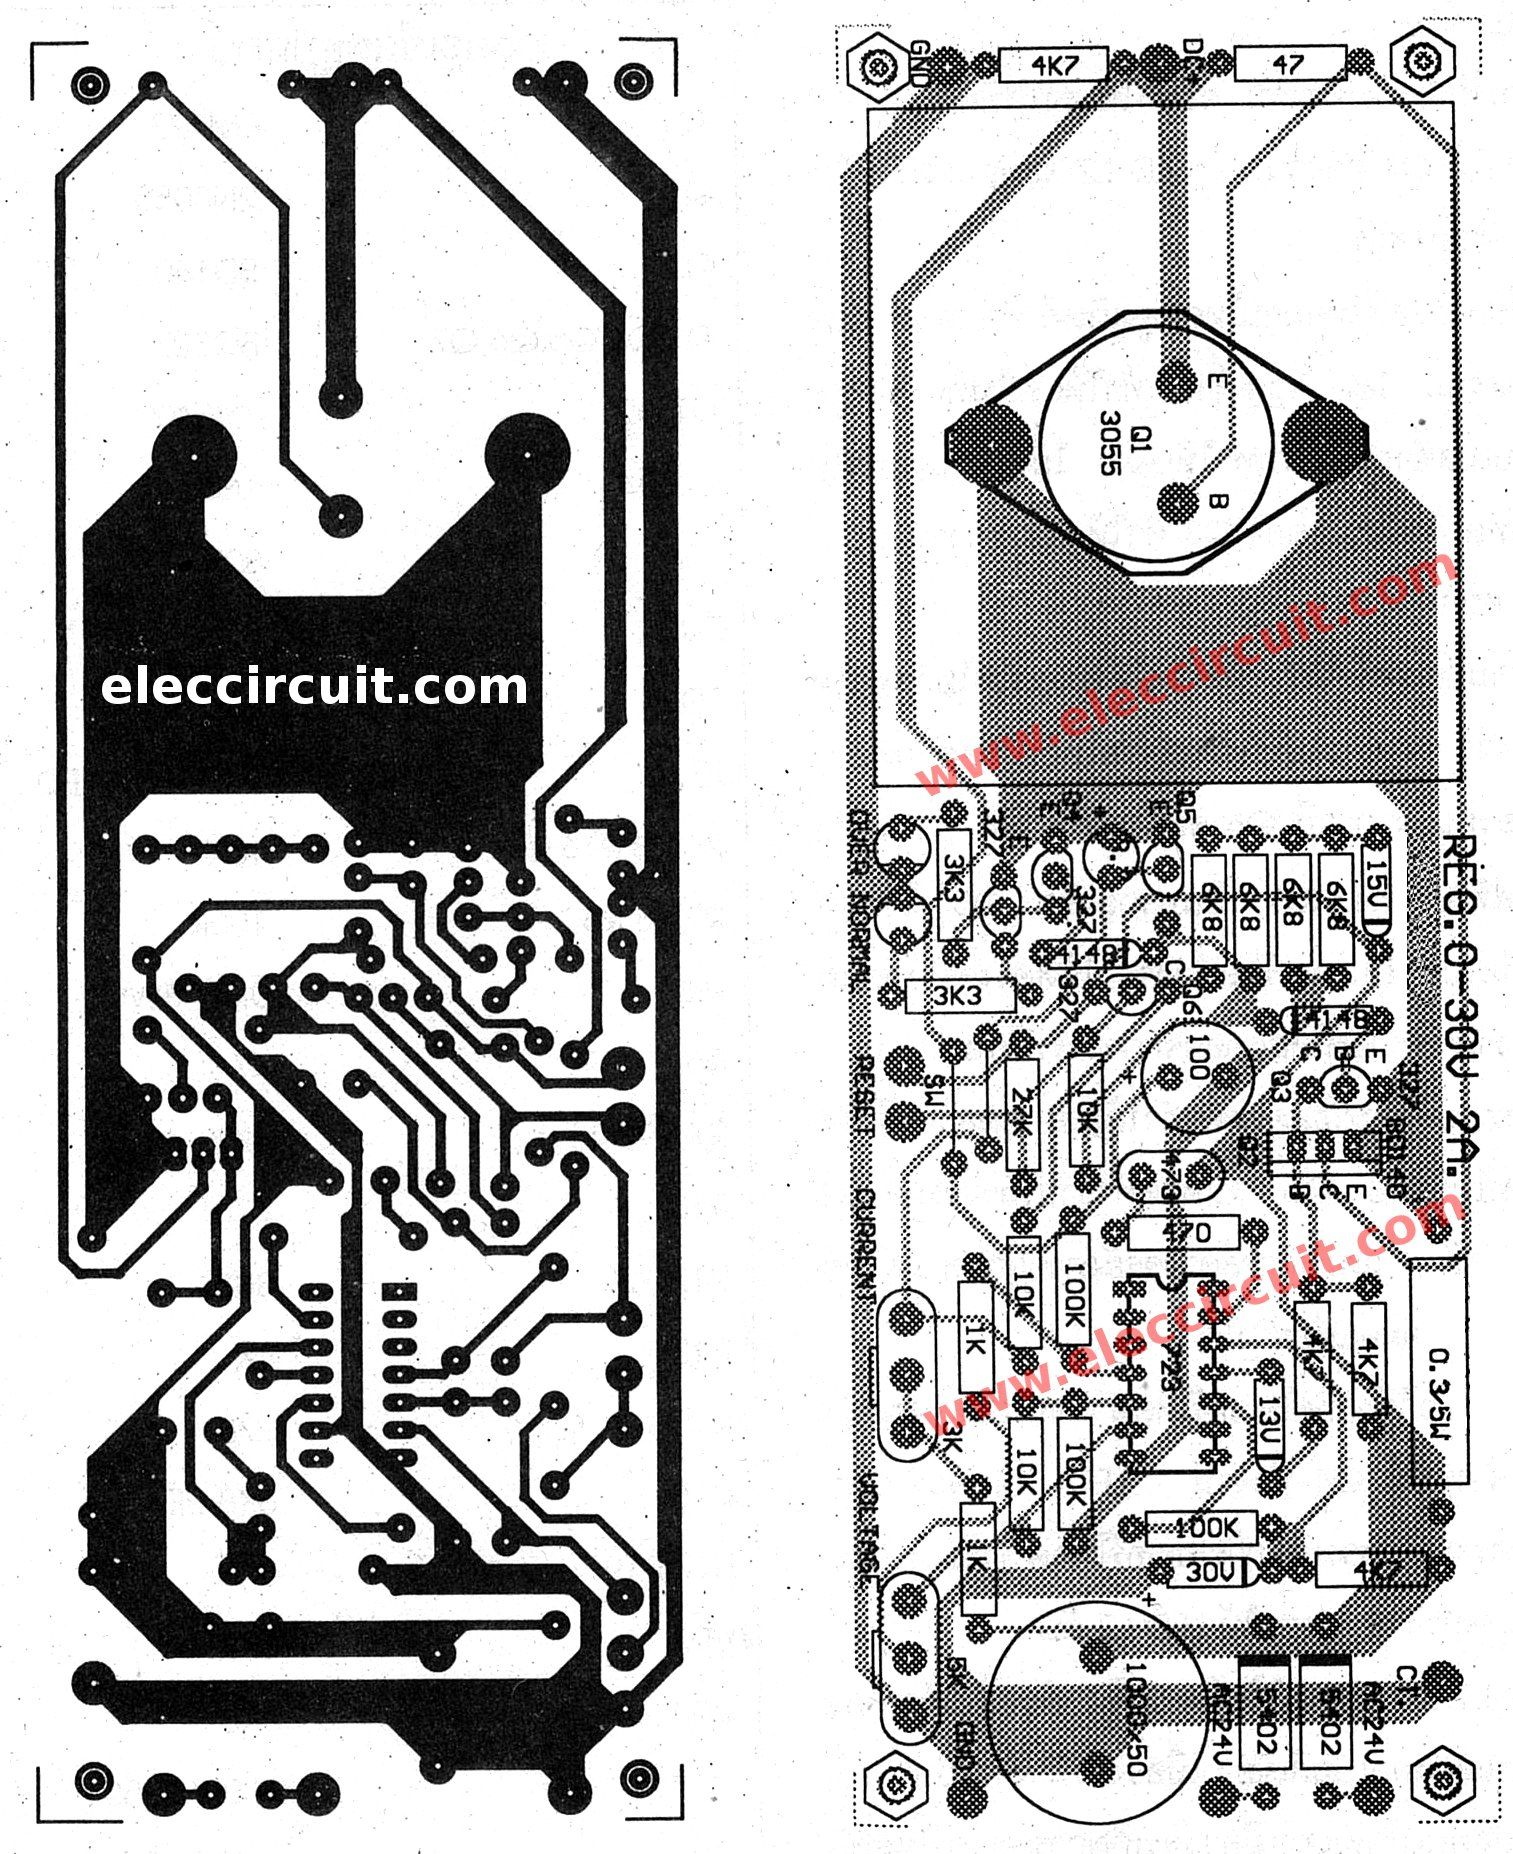 0 30v Variable Power Supply Circuit Diagram At 3a Eleccircuit Com Power Supply Circuit Circuit Diagram Switched Mode Power Supply